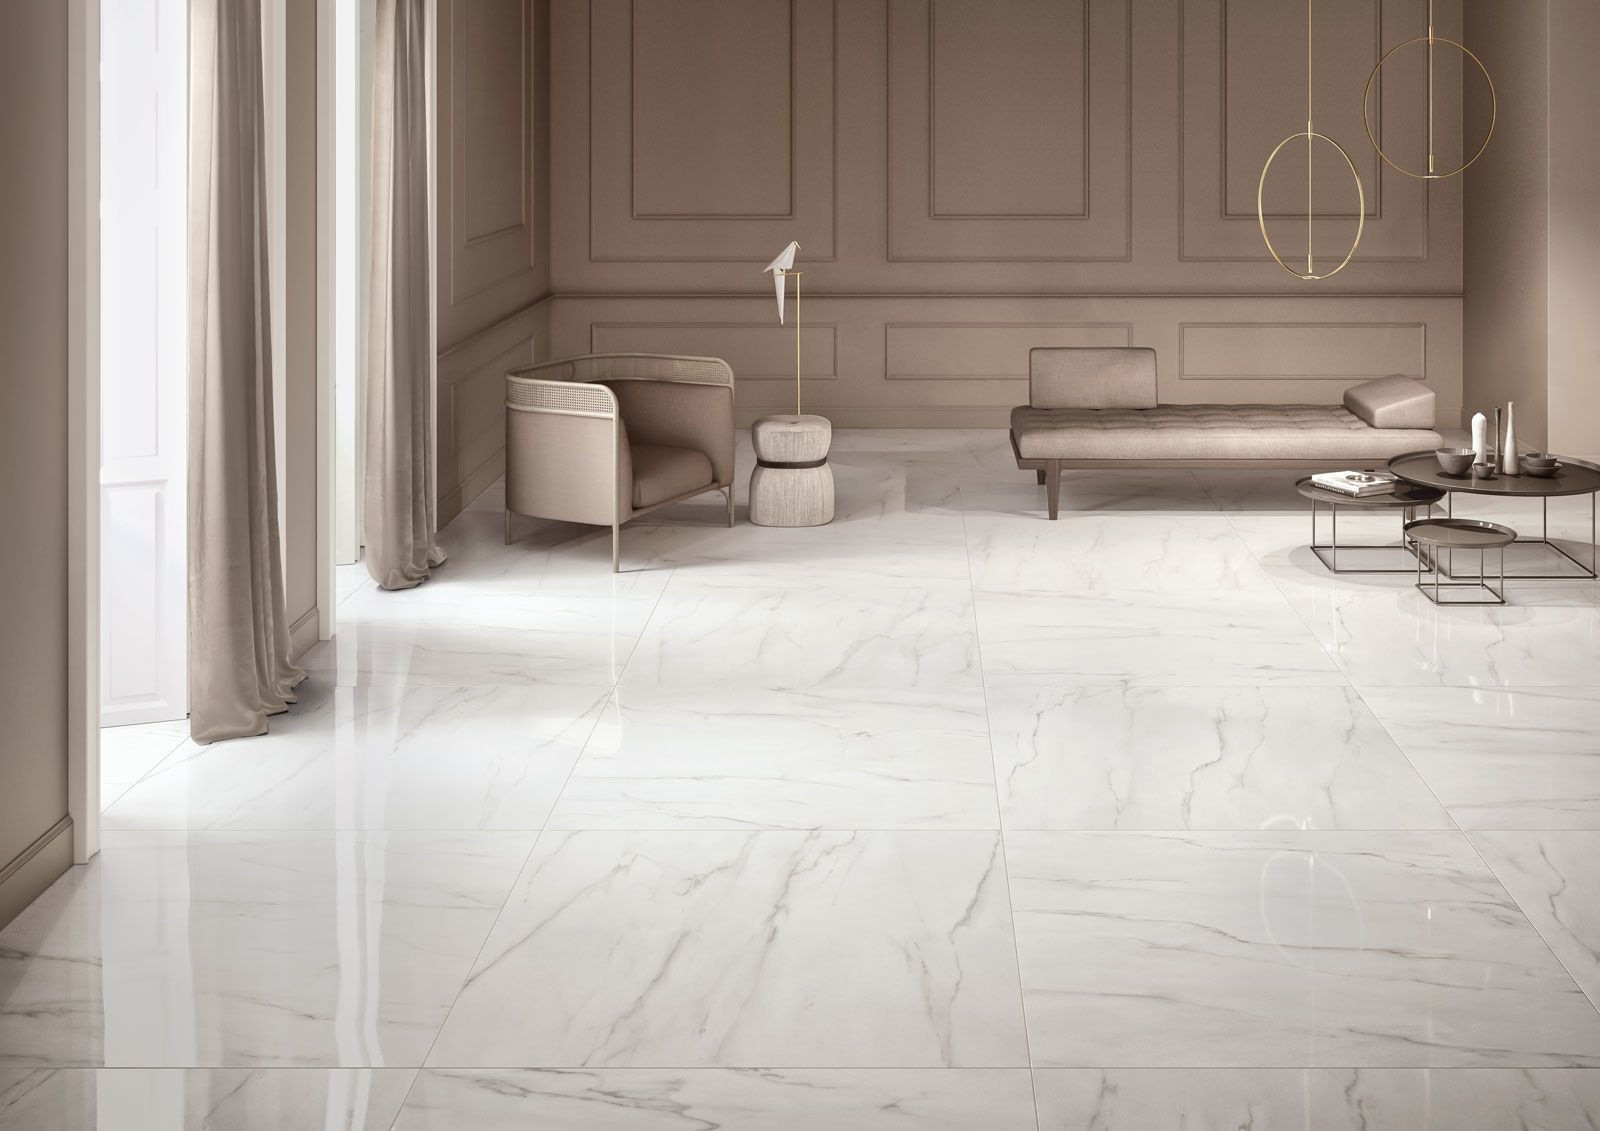 hardwood floor with tile border of 35 new porcelain tile look like marble pics flooring design ideas with regard to porcelain tile look like marble inspirational elements lux ceramiche keope stock of 35 new porcelain tile